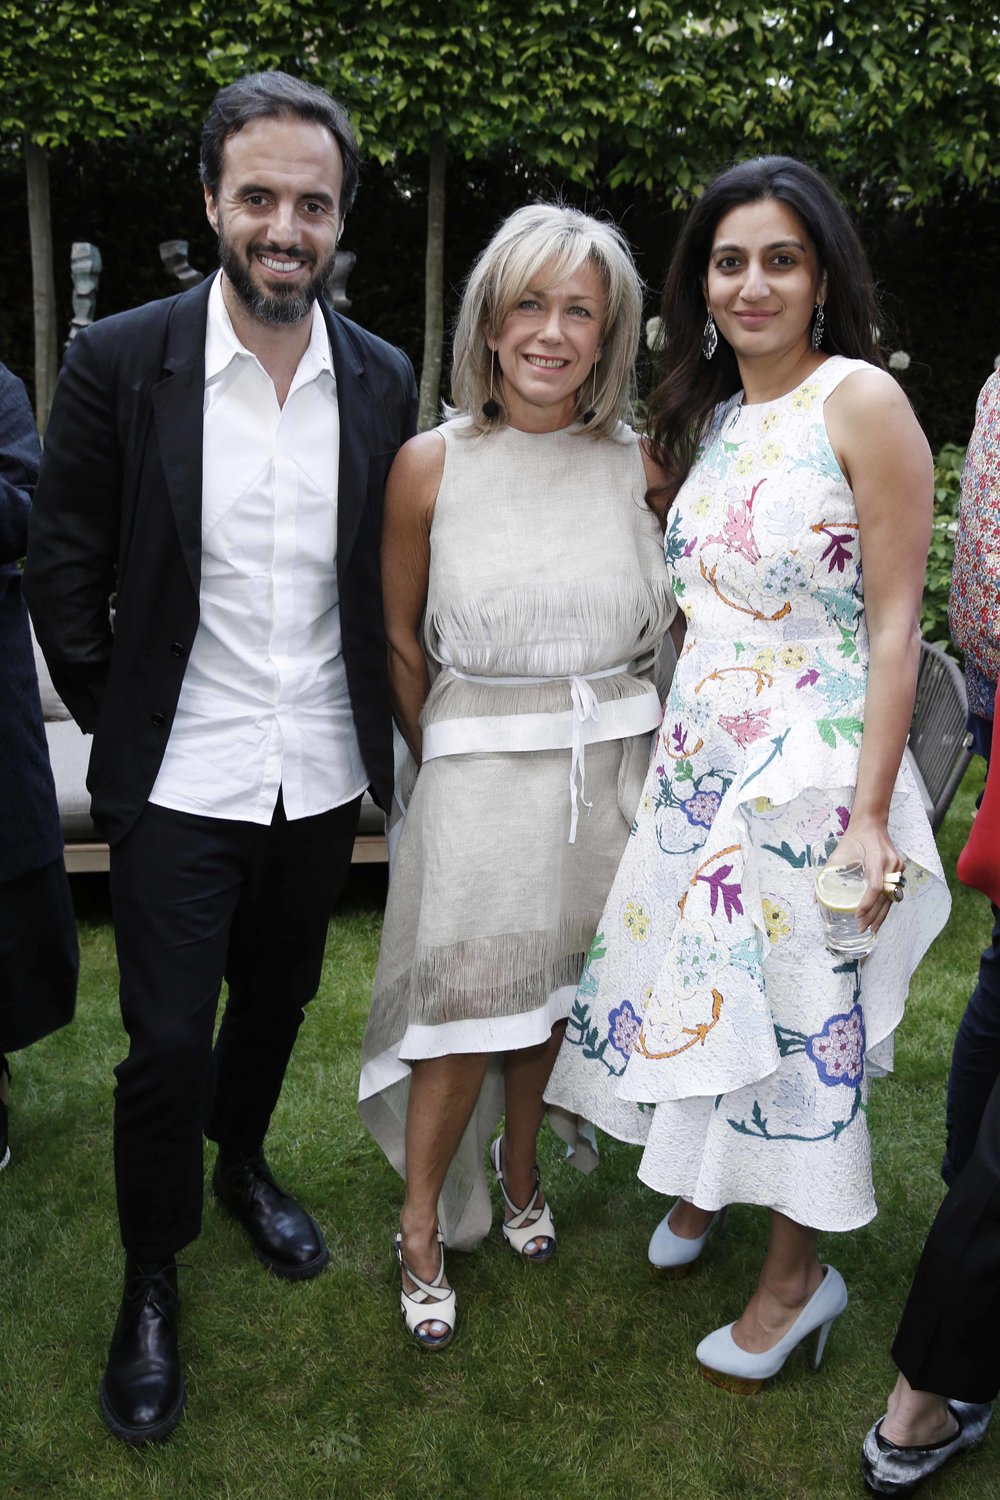 José Neves of Farfetch, former BFC Fashion Trust corporate partner, with the Fashion Trust's Sian Westerman and Megha Mittal / Photo: Darren Gerrish